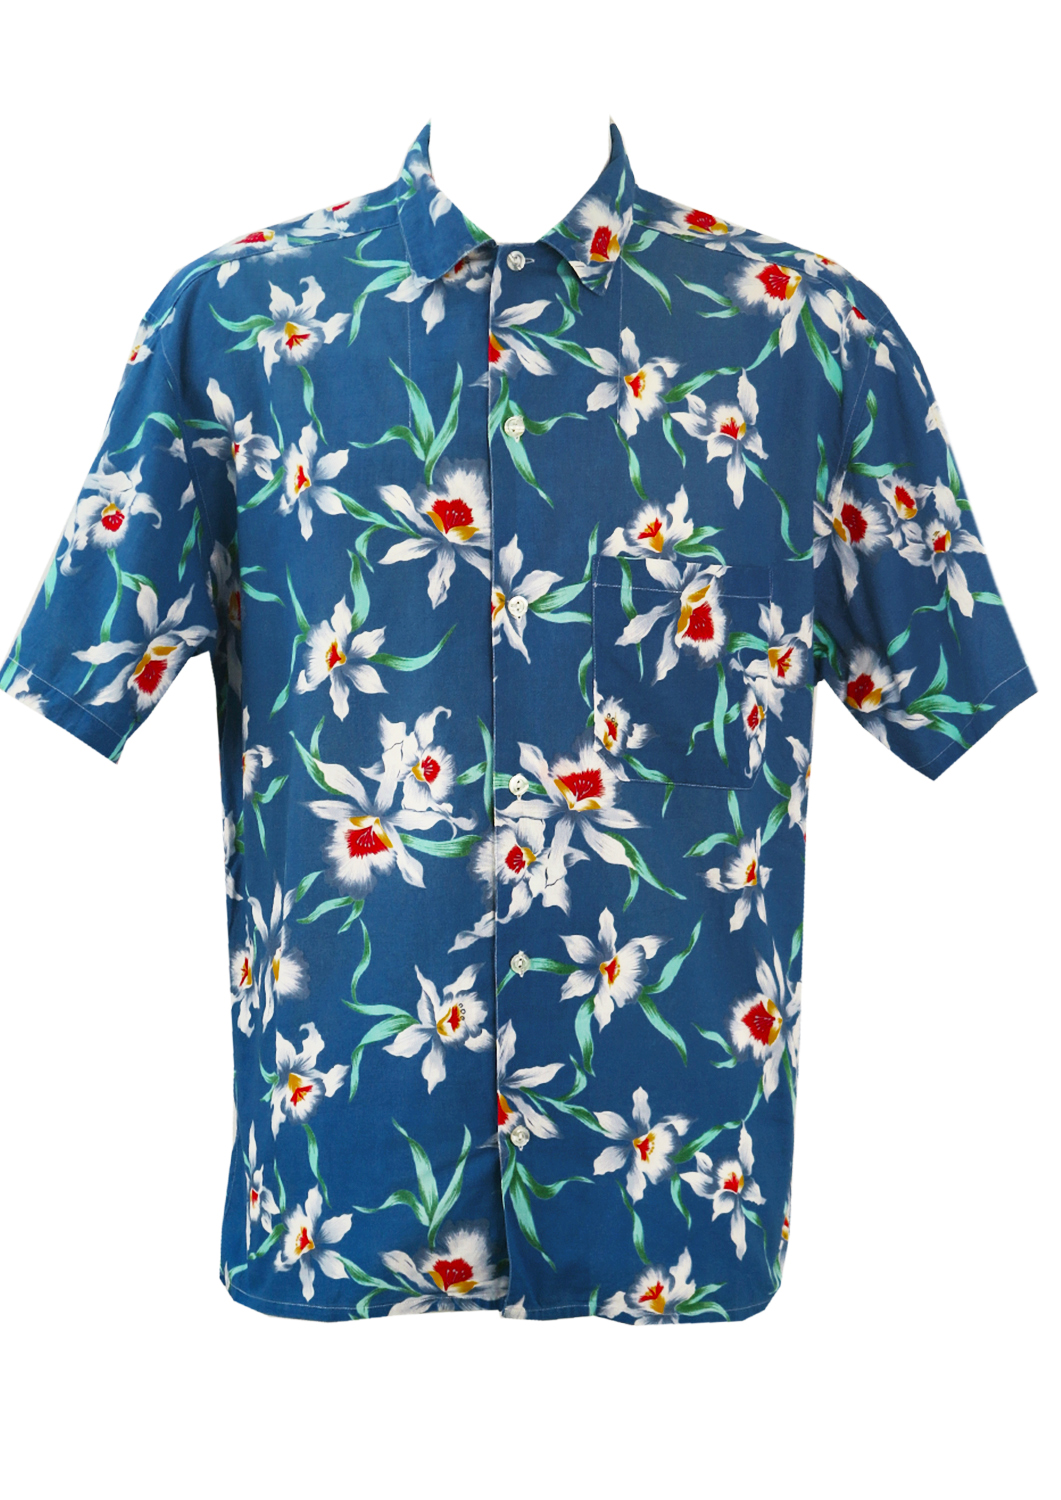 0a7cc0301 Blue Hawaiian Shirt with White, Red & Green Floral Print – XL/XXL ...